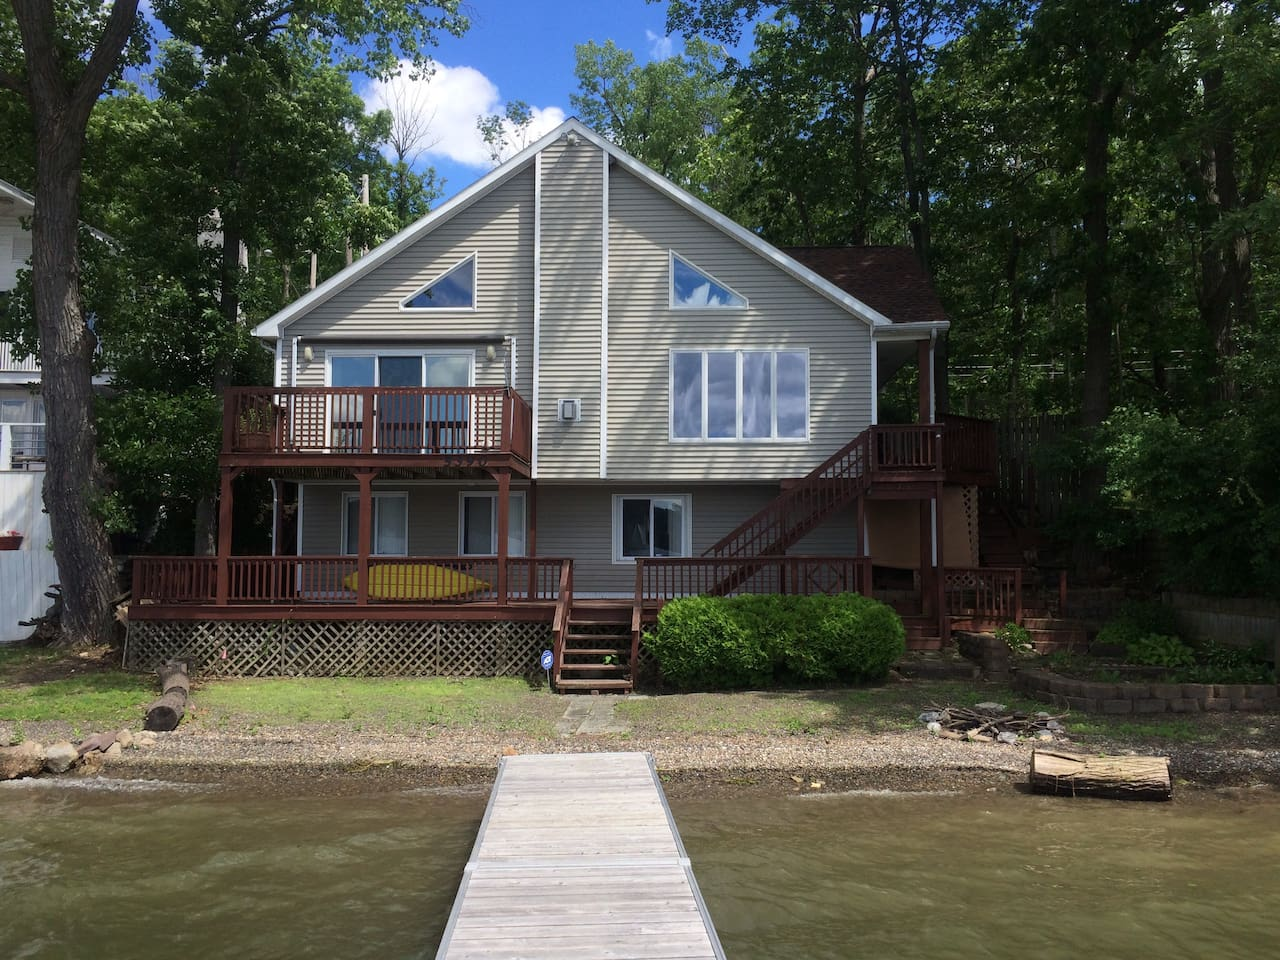 Beautiful Contemporary A-Frame.  Spacious open floor plan that all overlooks the lake!  Great for entertaining!  Walk out to the deck.  The lower level is partially finished w/add'l bedroom, bonus room & 1/2 bath.  Dock and natural beach.